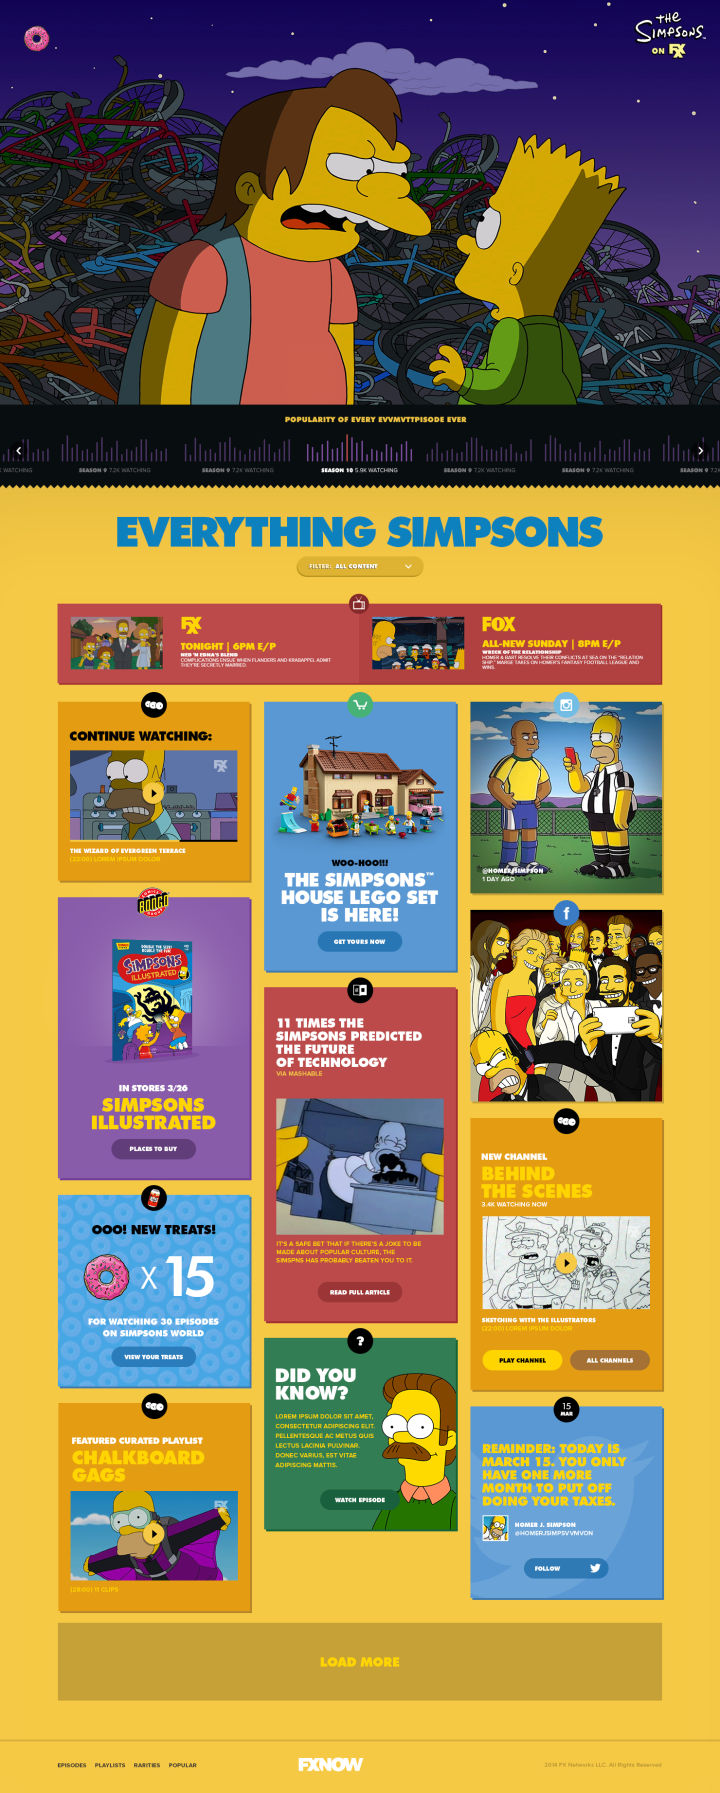 FXX and The Simpsons launch Simpsons World app for all-access to #EverySimpsonsEver